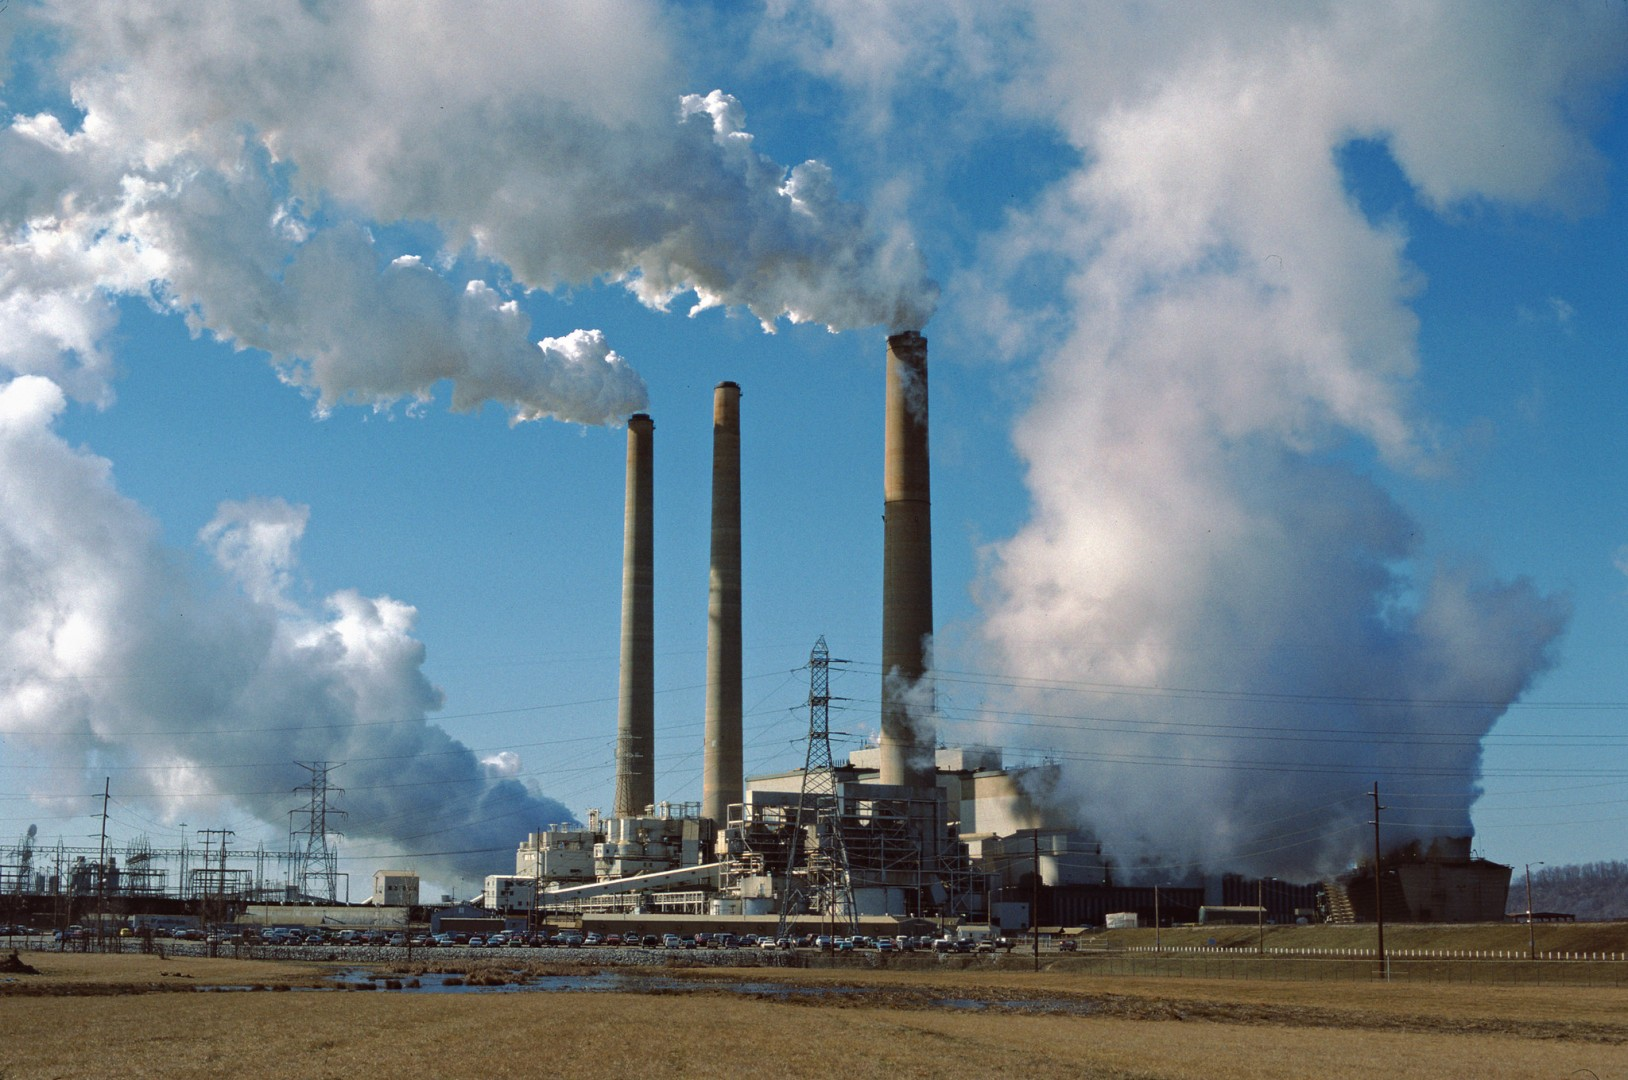 For Pacificorp, early coal shutdowns could create US$238m in savings (Credit: Flickr / William Alden)